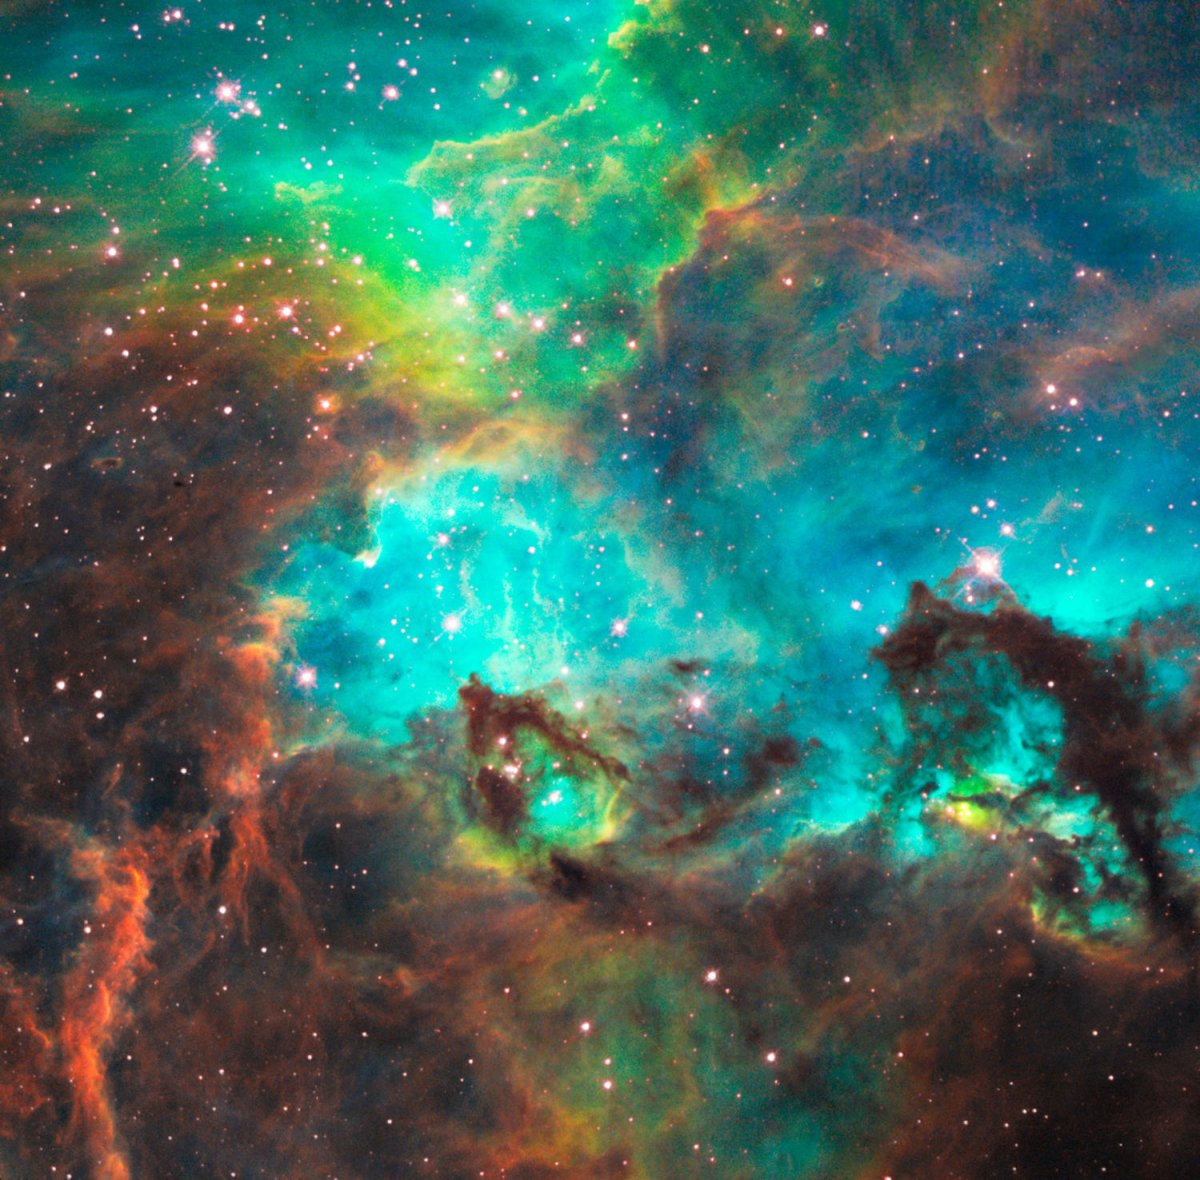 Pictures From The Hubble Telescope